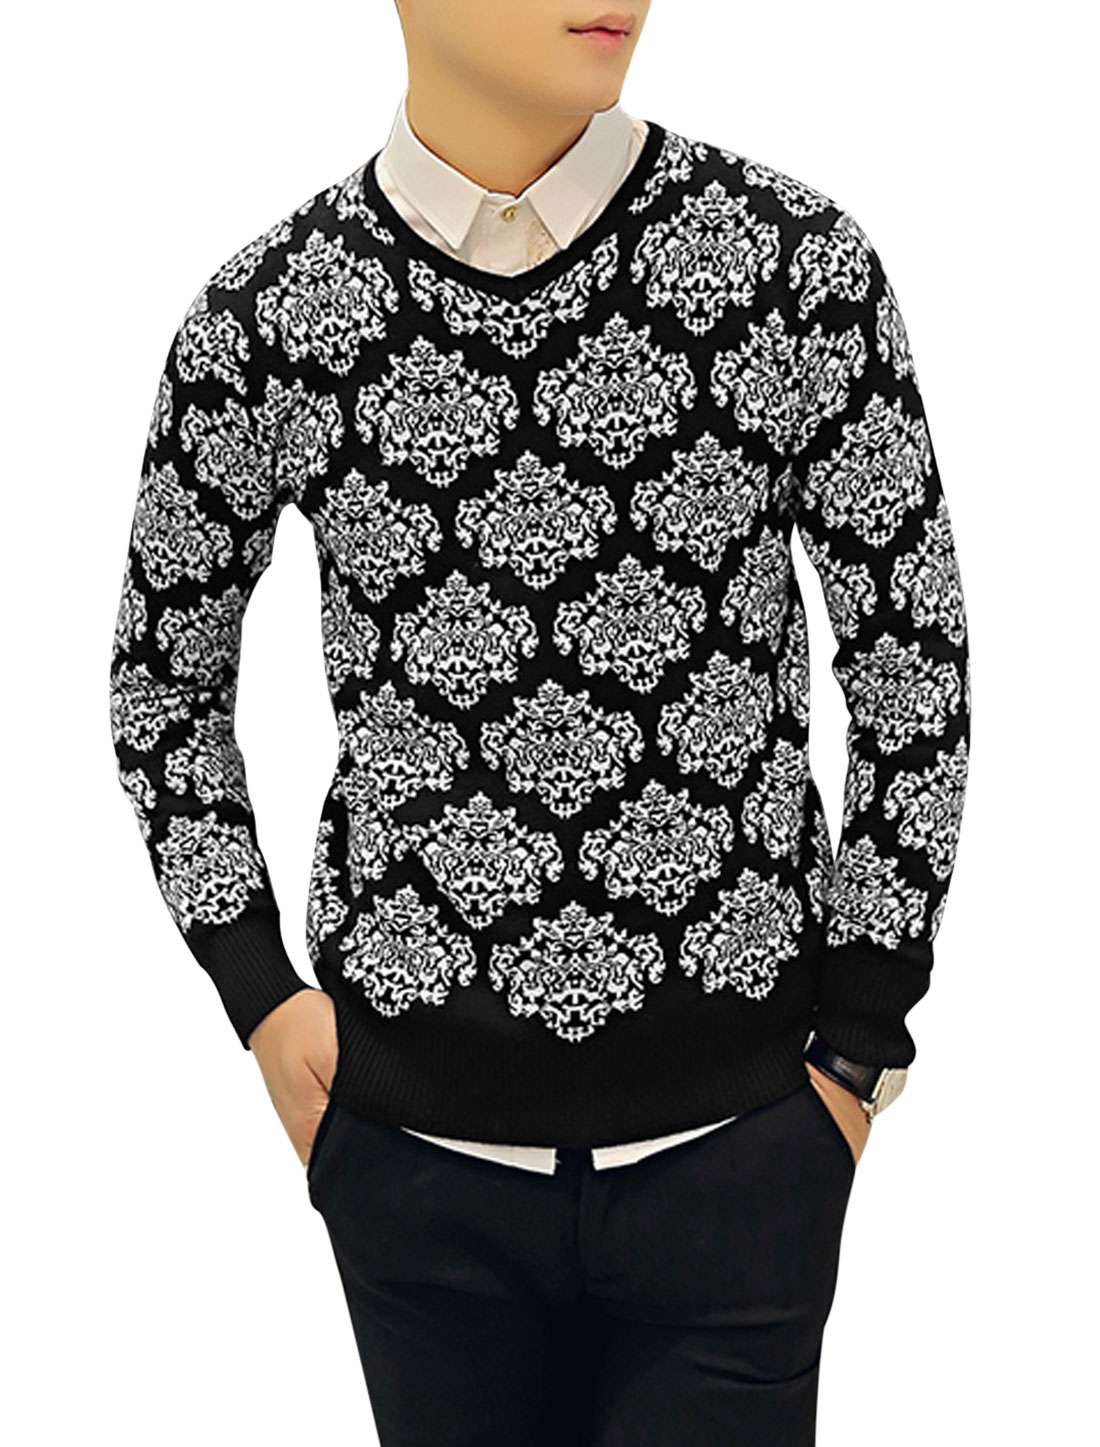 Pullover Jacquard Pattern Chic Black White Knit Shirt for Man S